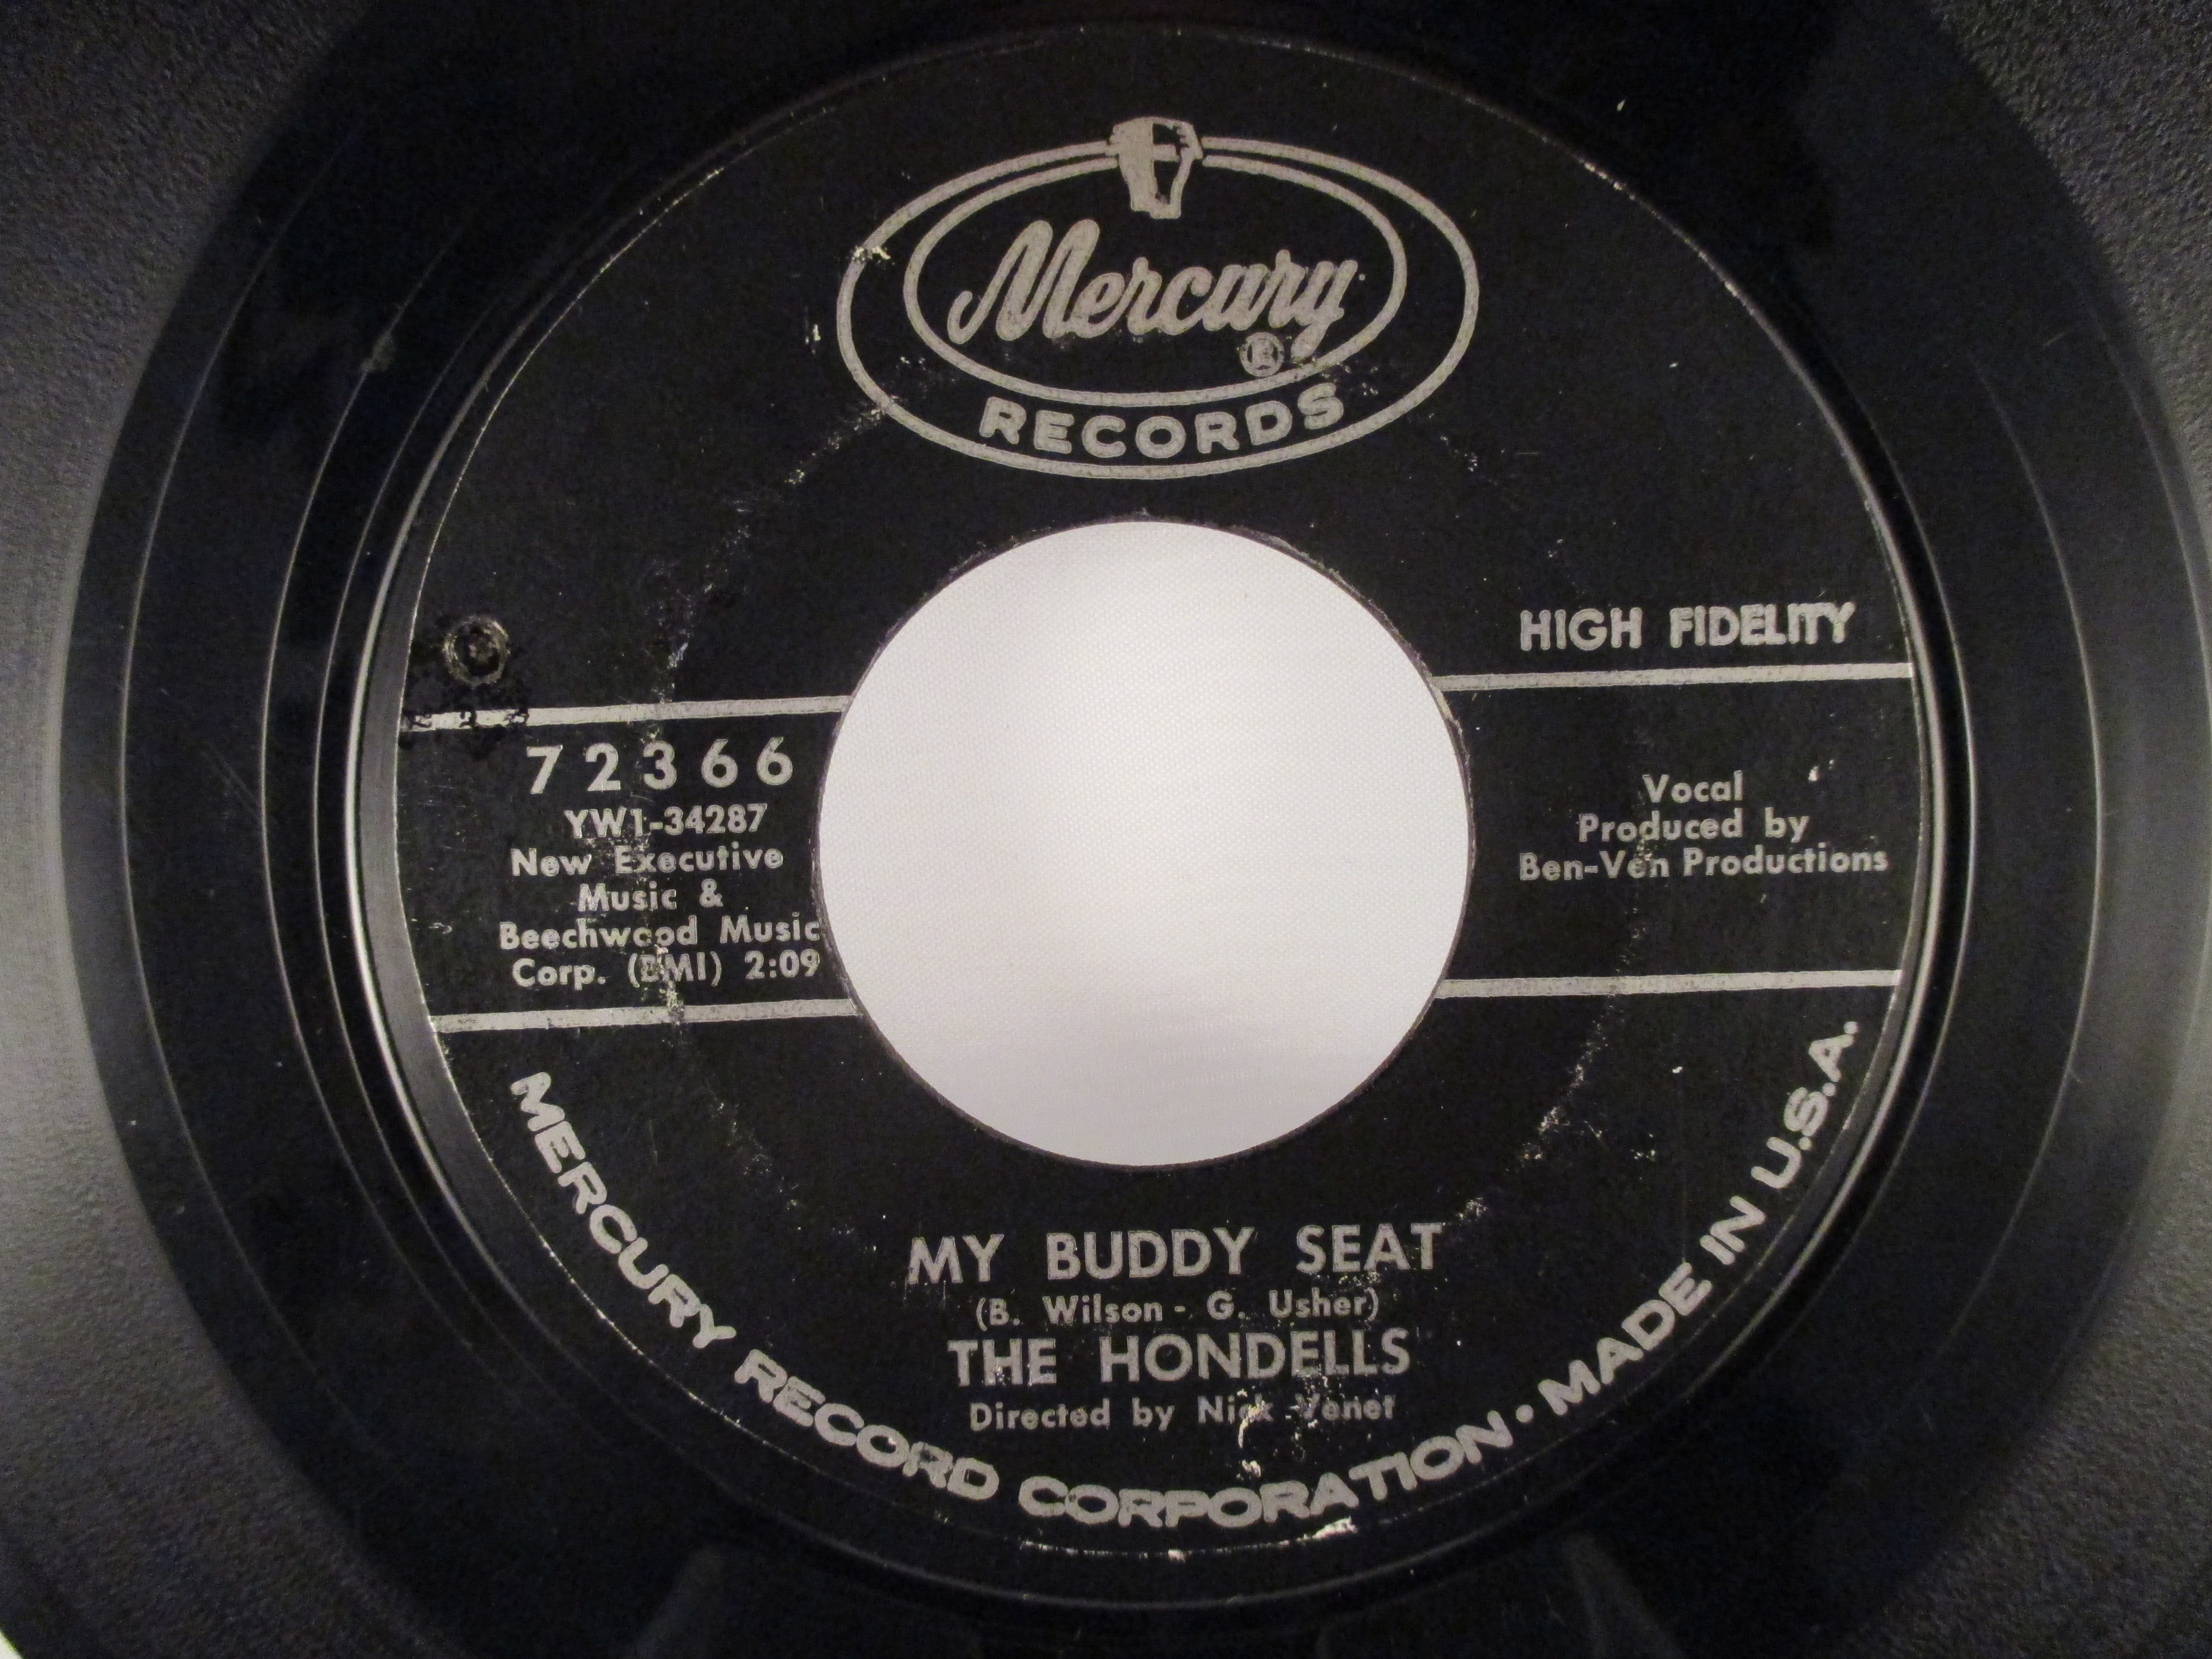 HONDELLS : My buddy seat / You're gonna' ride with me